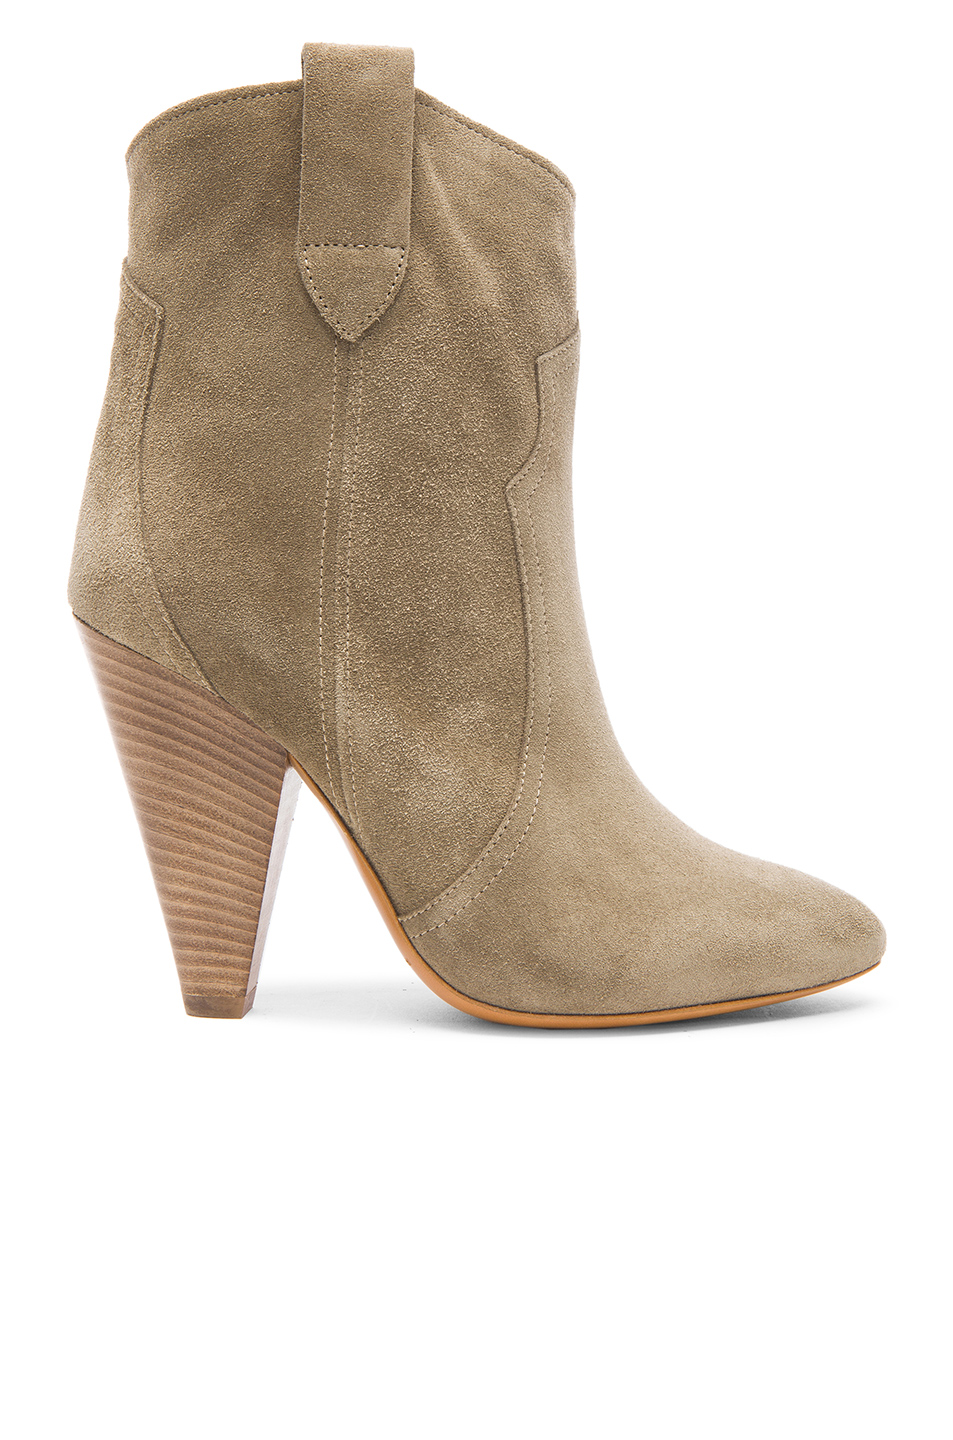 Isabel Marant Etoile Roxann Calfskin Velvet Leather Booties in Neutrals,Gray